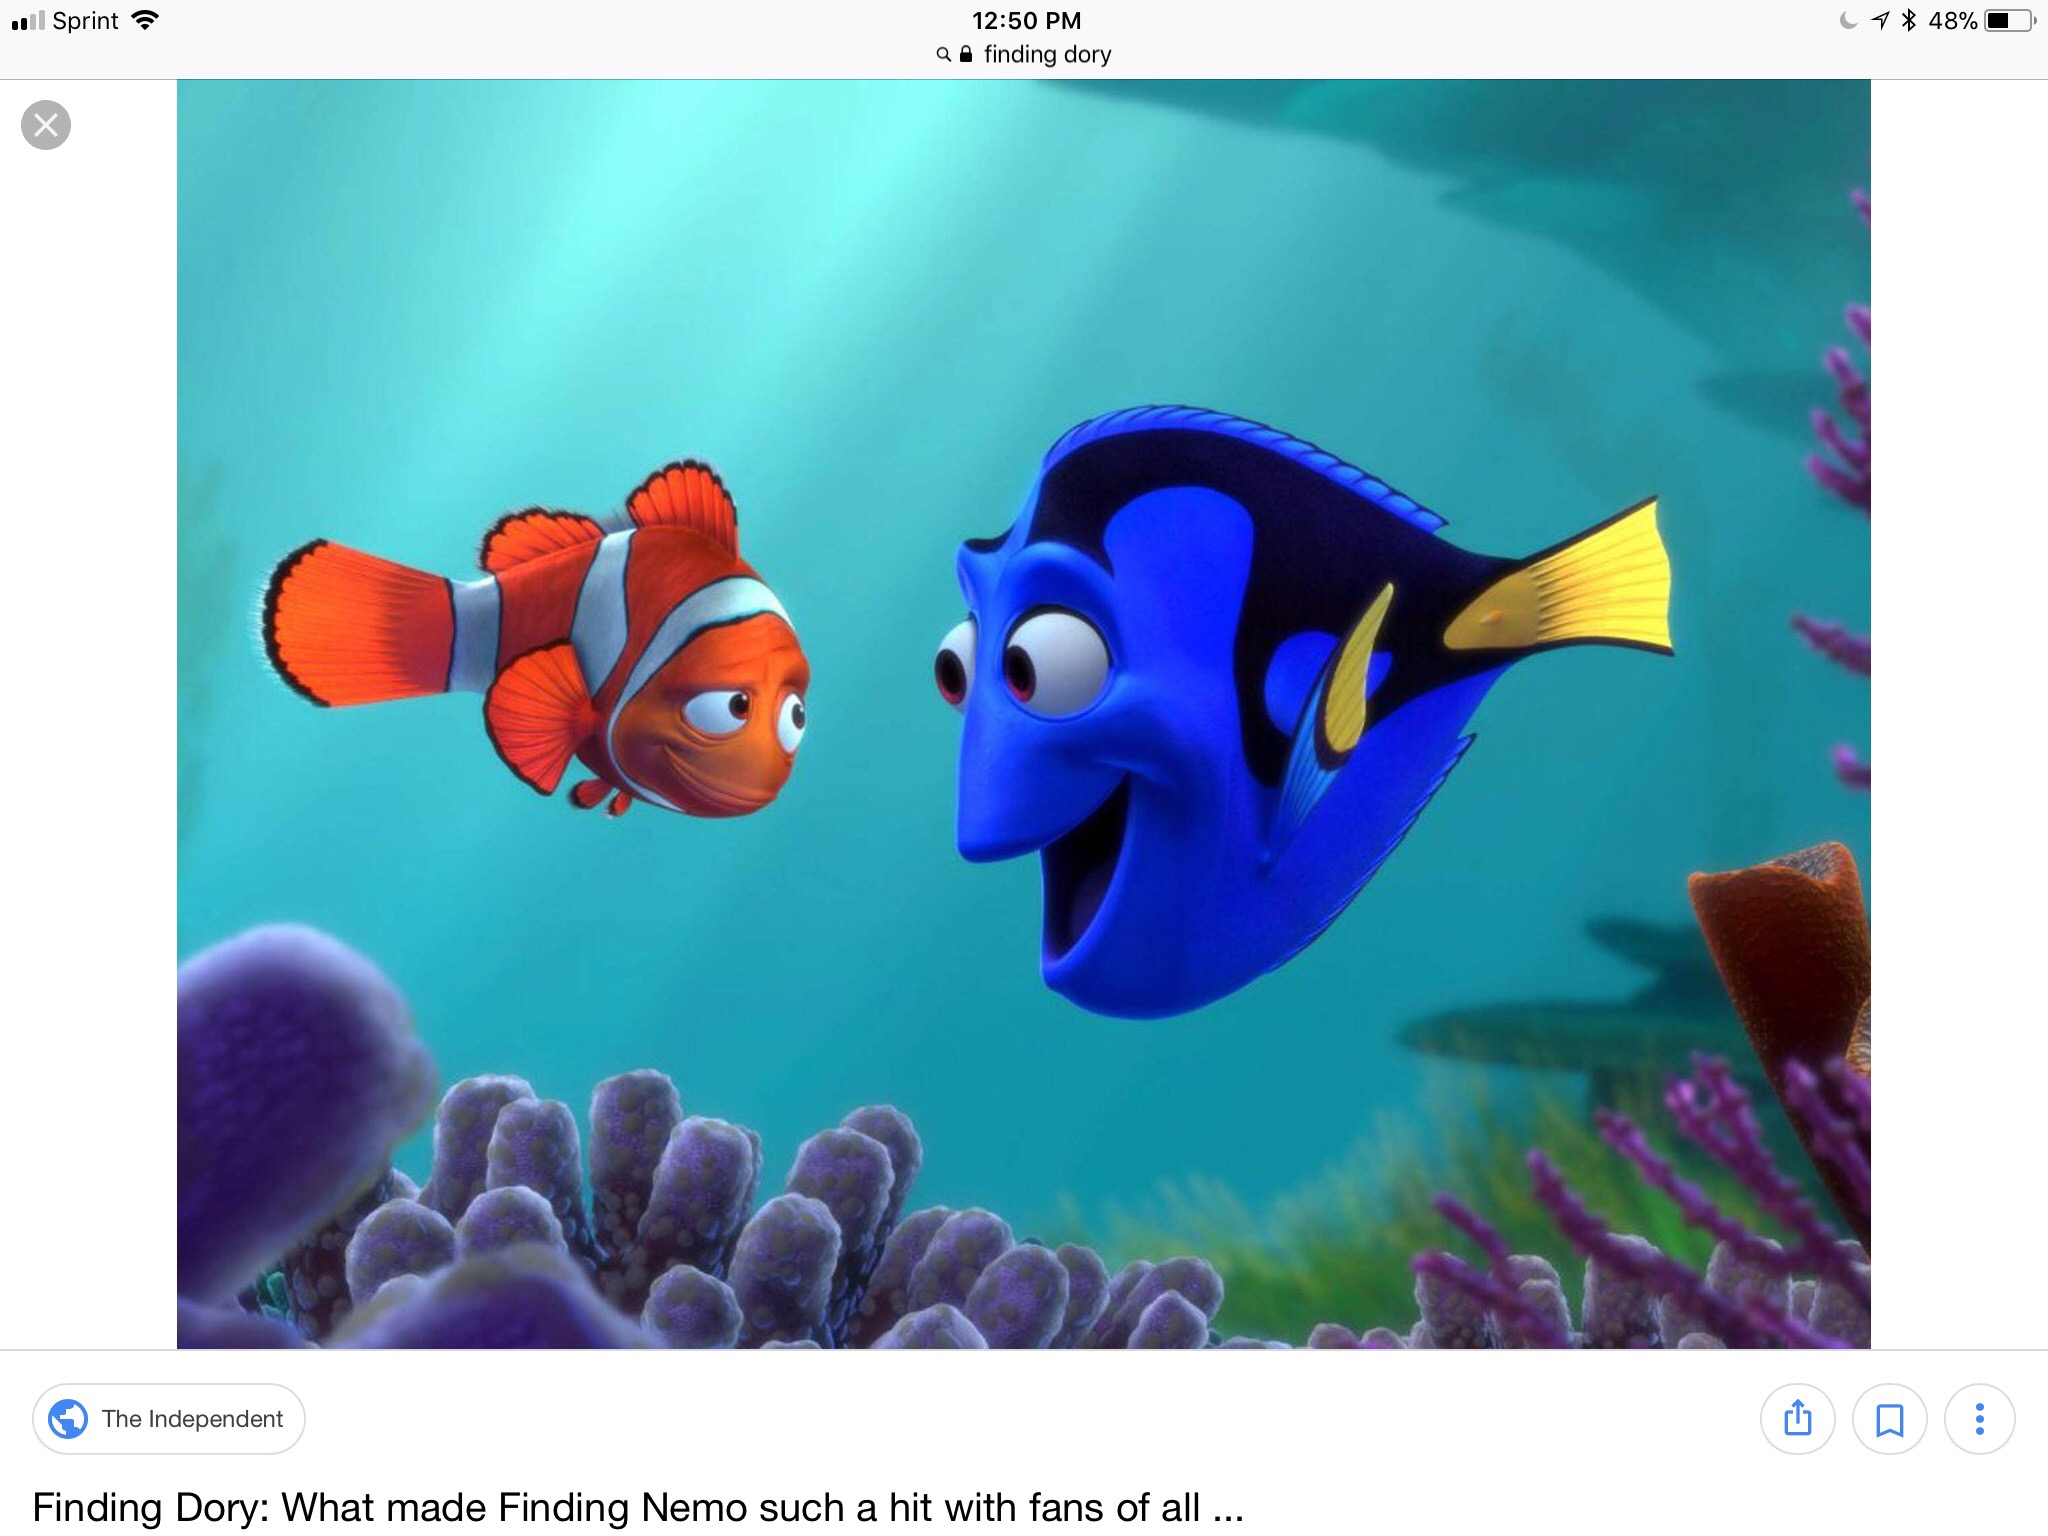 Image of Dory and another fish with underwater background.